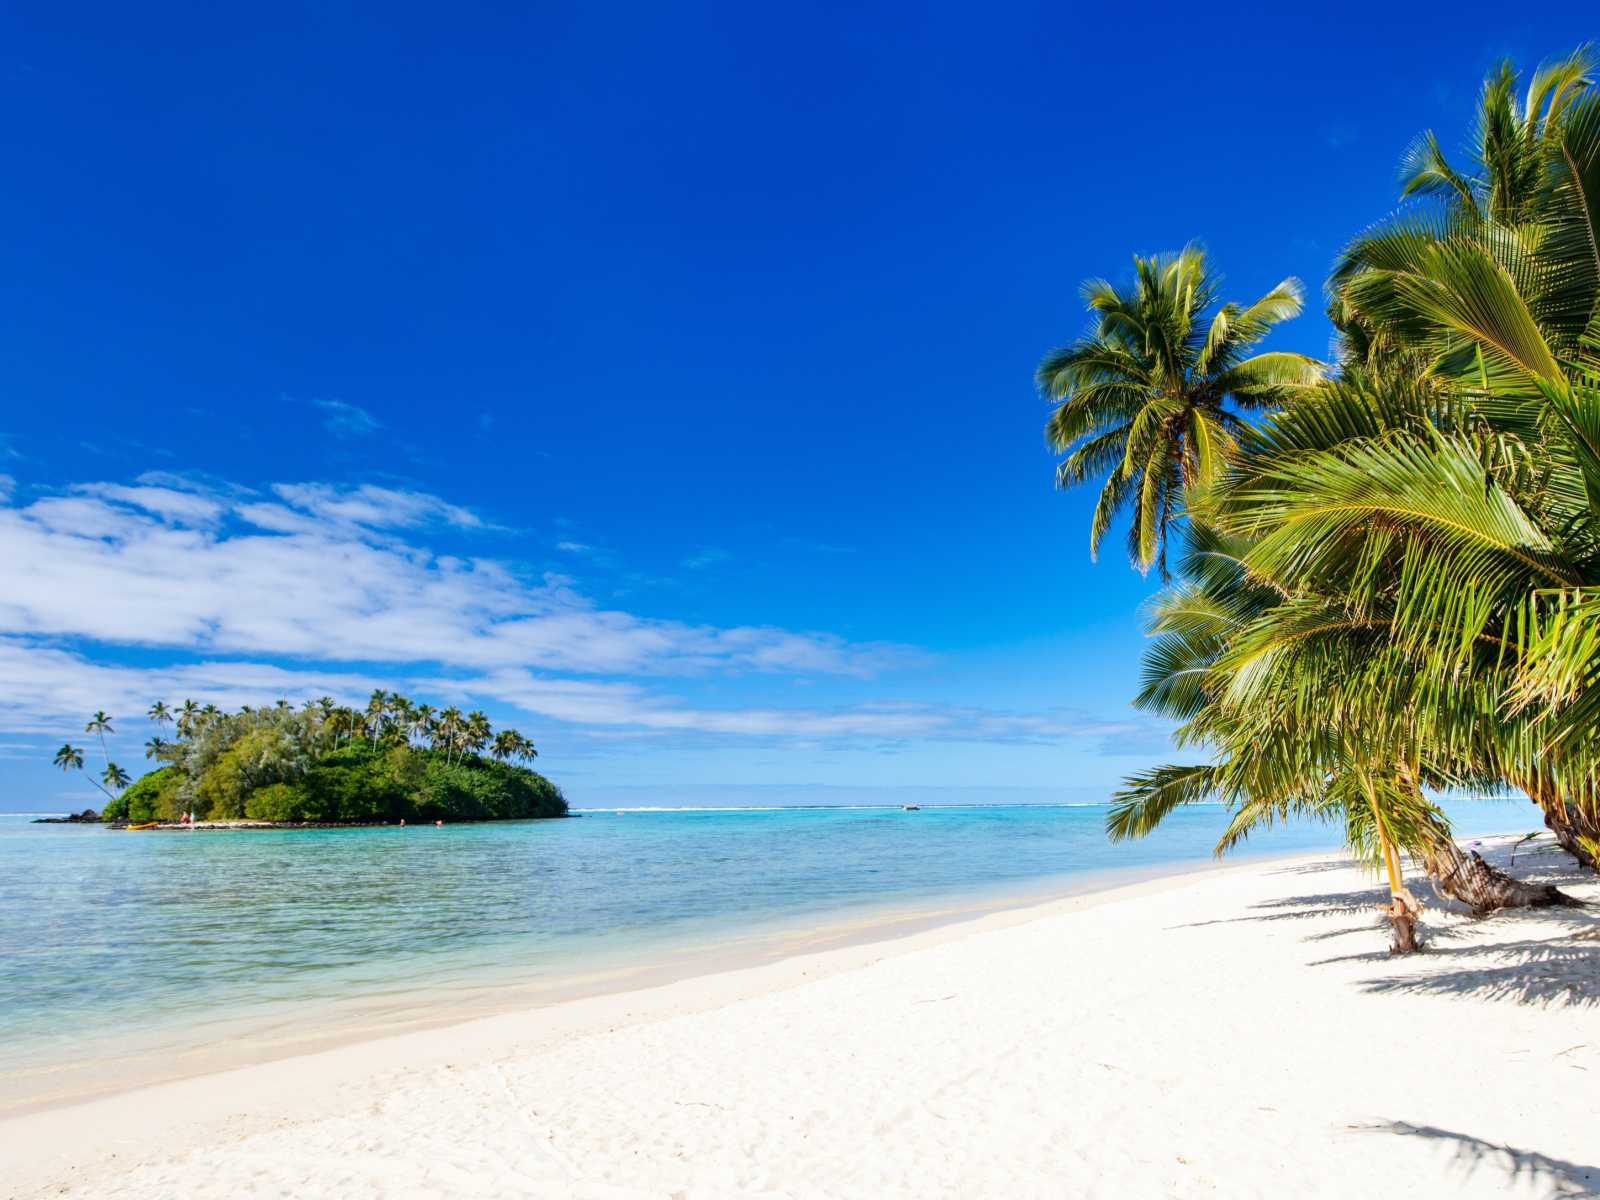 Go on a Cook Islands vacation to see palm trees on white sands of Rarotonga Muri Beach Lagune.